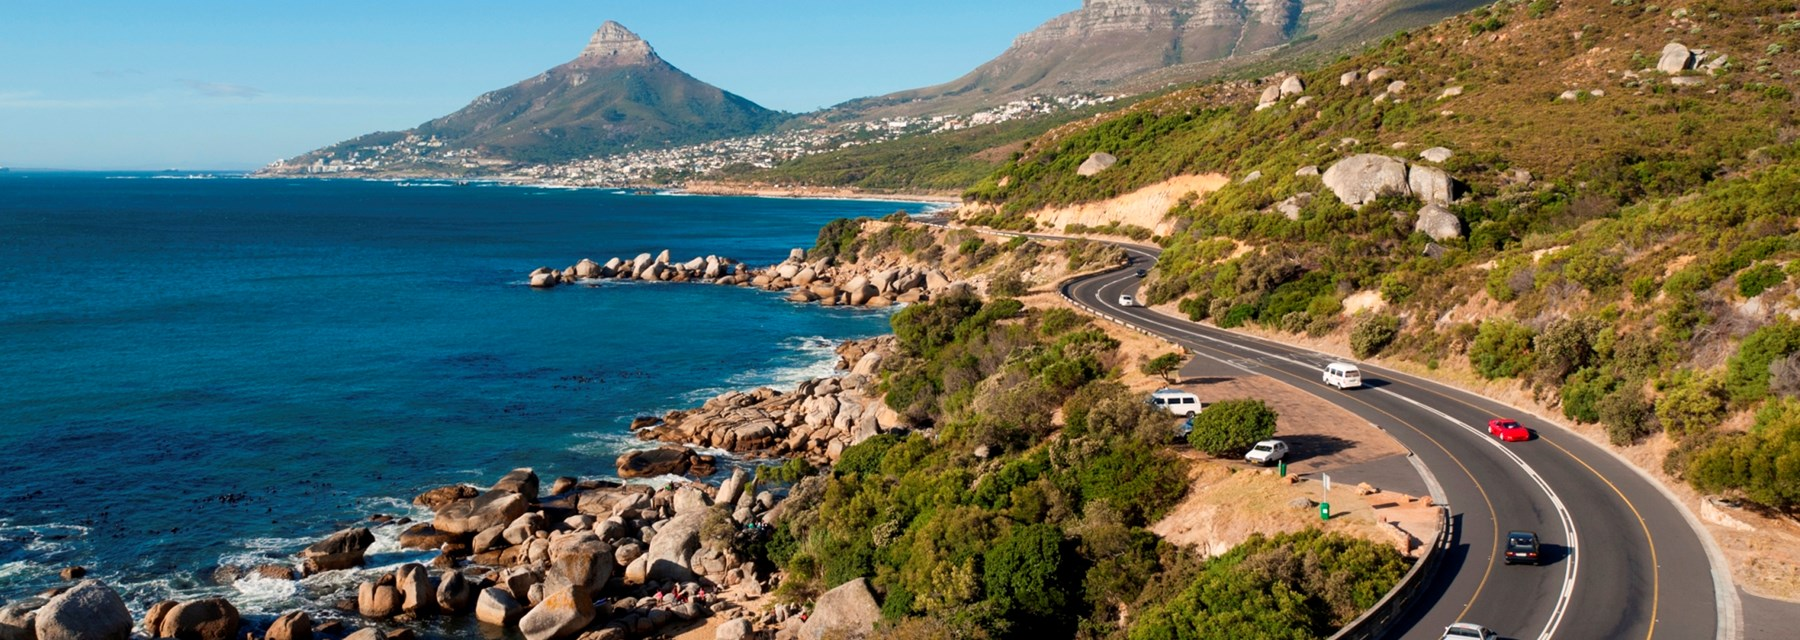 Winelands garden route self drive south africa - Drive from port elizabeth to cape town ...